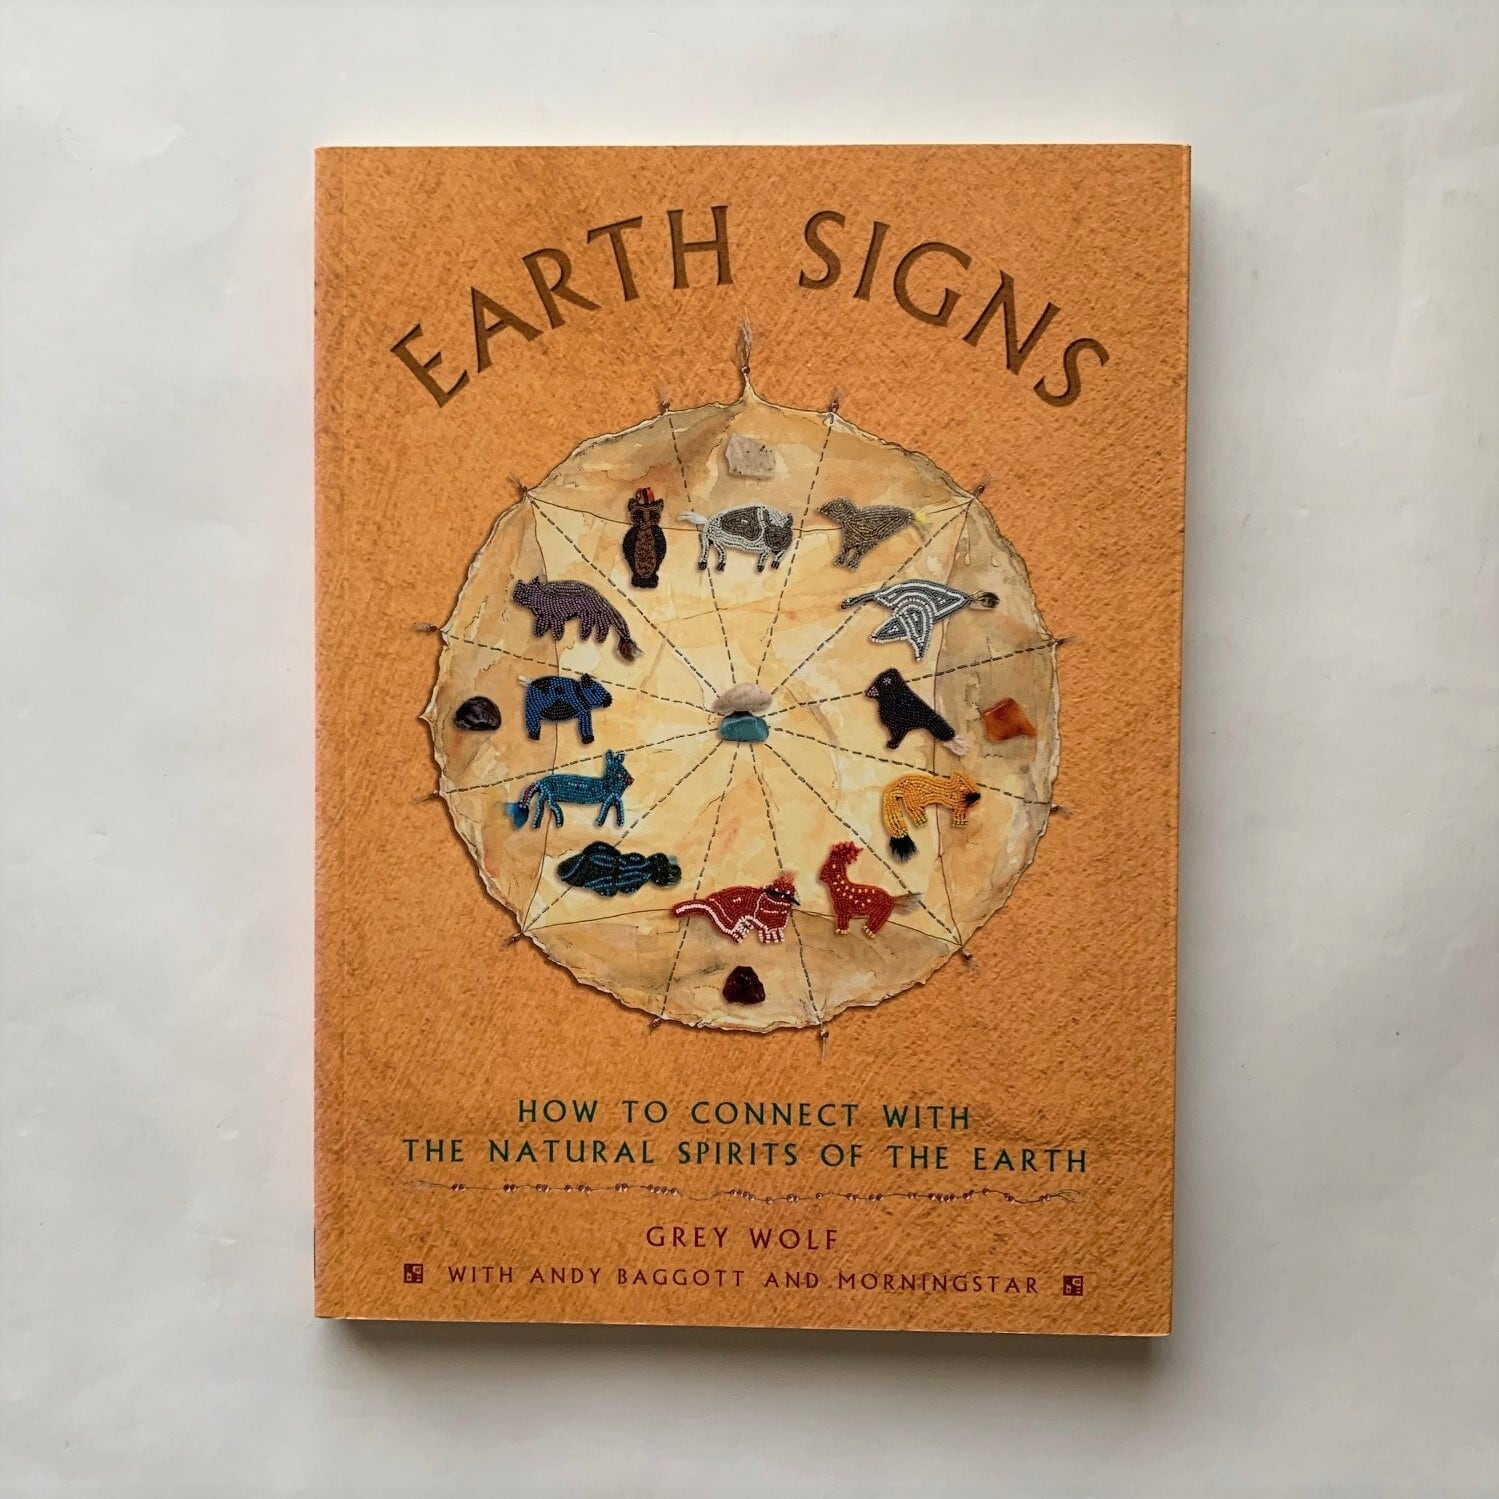 Earth Signs: How to Connect with the Natural Spirits of the Earth by Grey Wolf, Andy Baggott